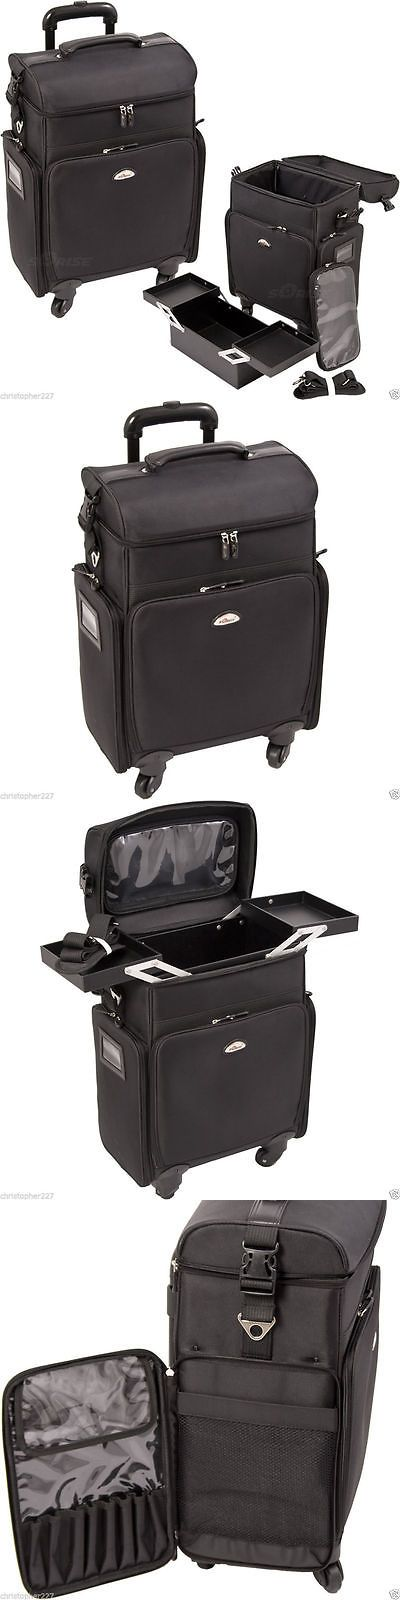 Rolling Makeup Cases: Salon Trolley Bag On Wheels Rolling Black Supply Makeup Hairstylist Case Laptop BUY IT NOW ONLY: $149.99